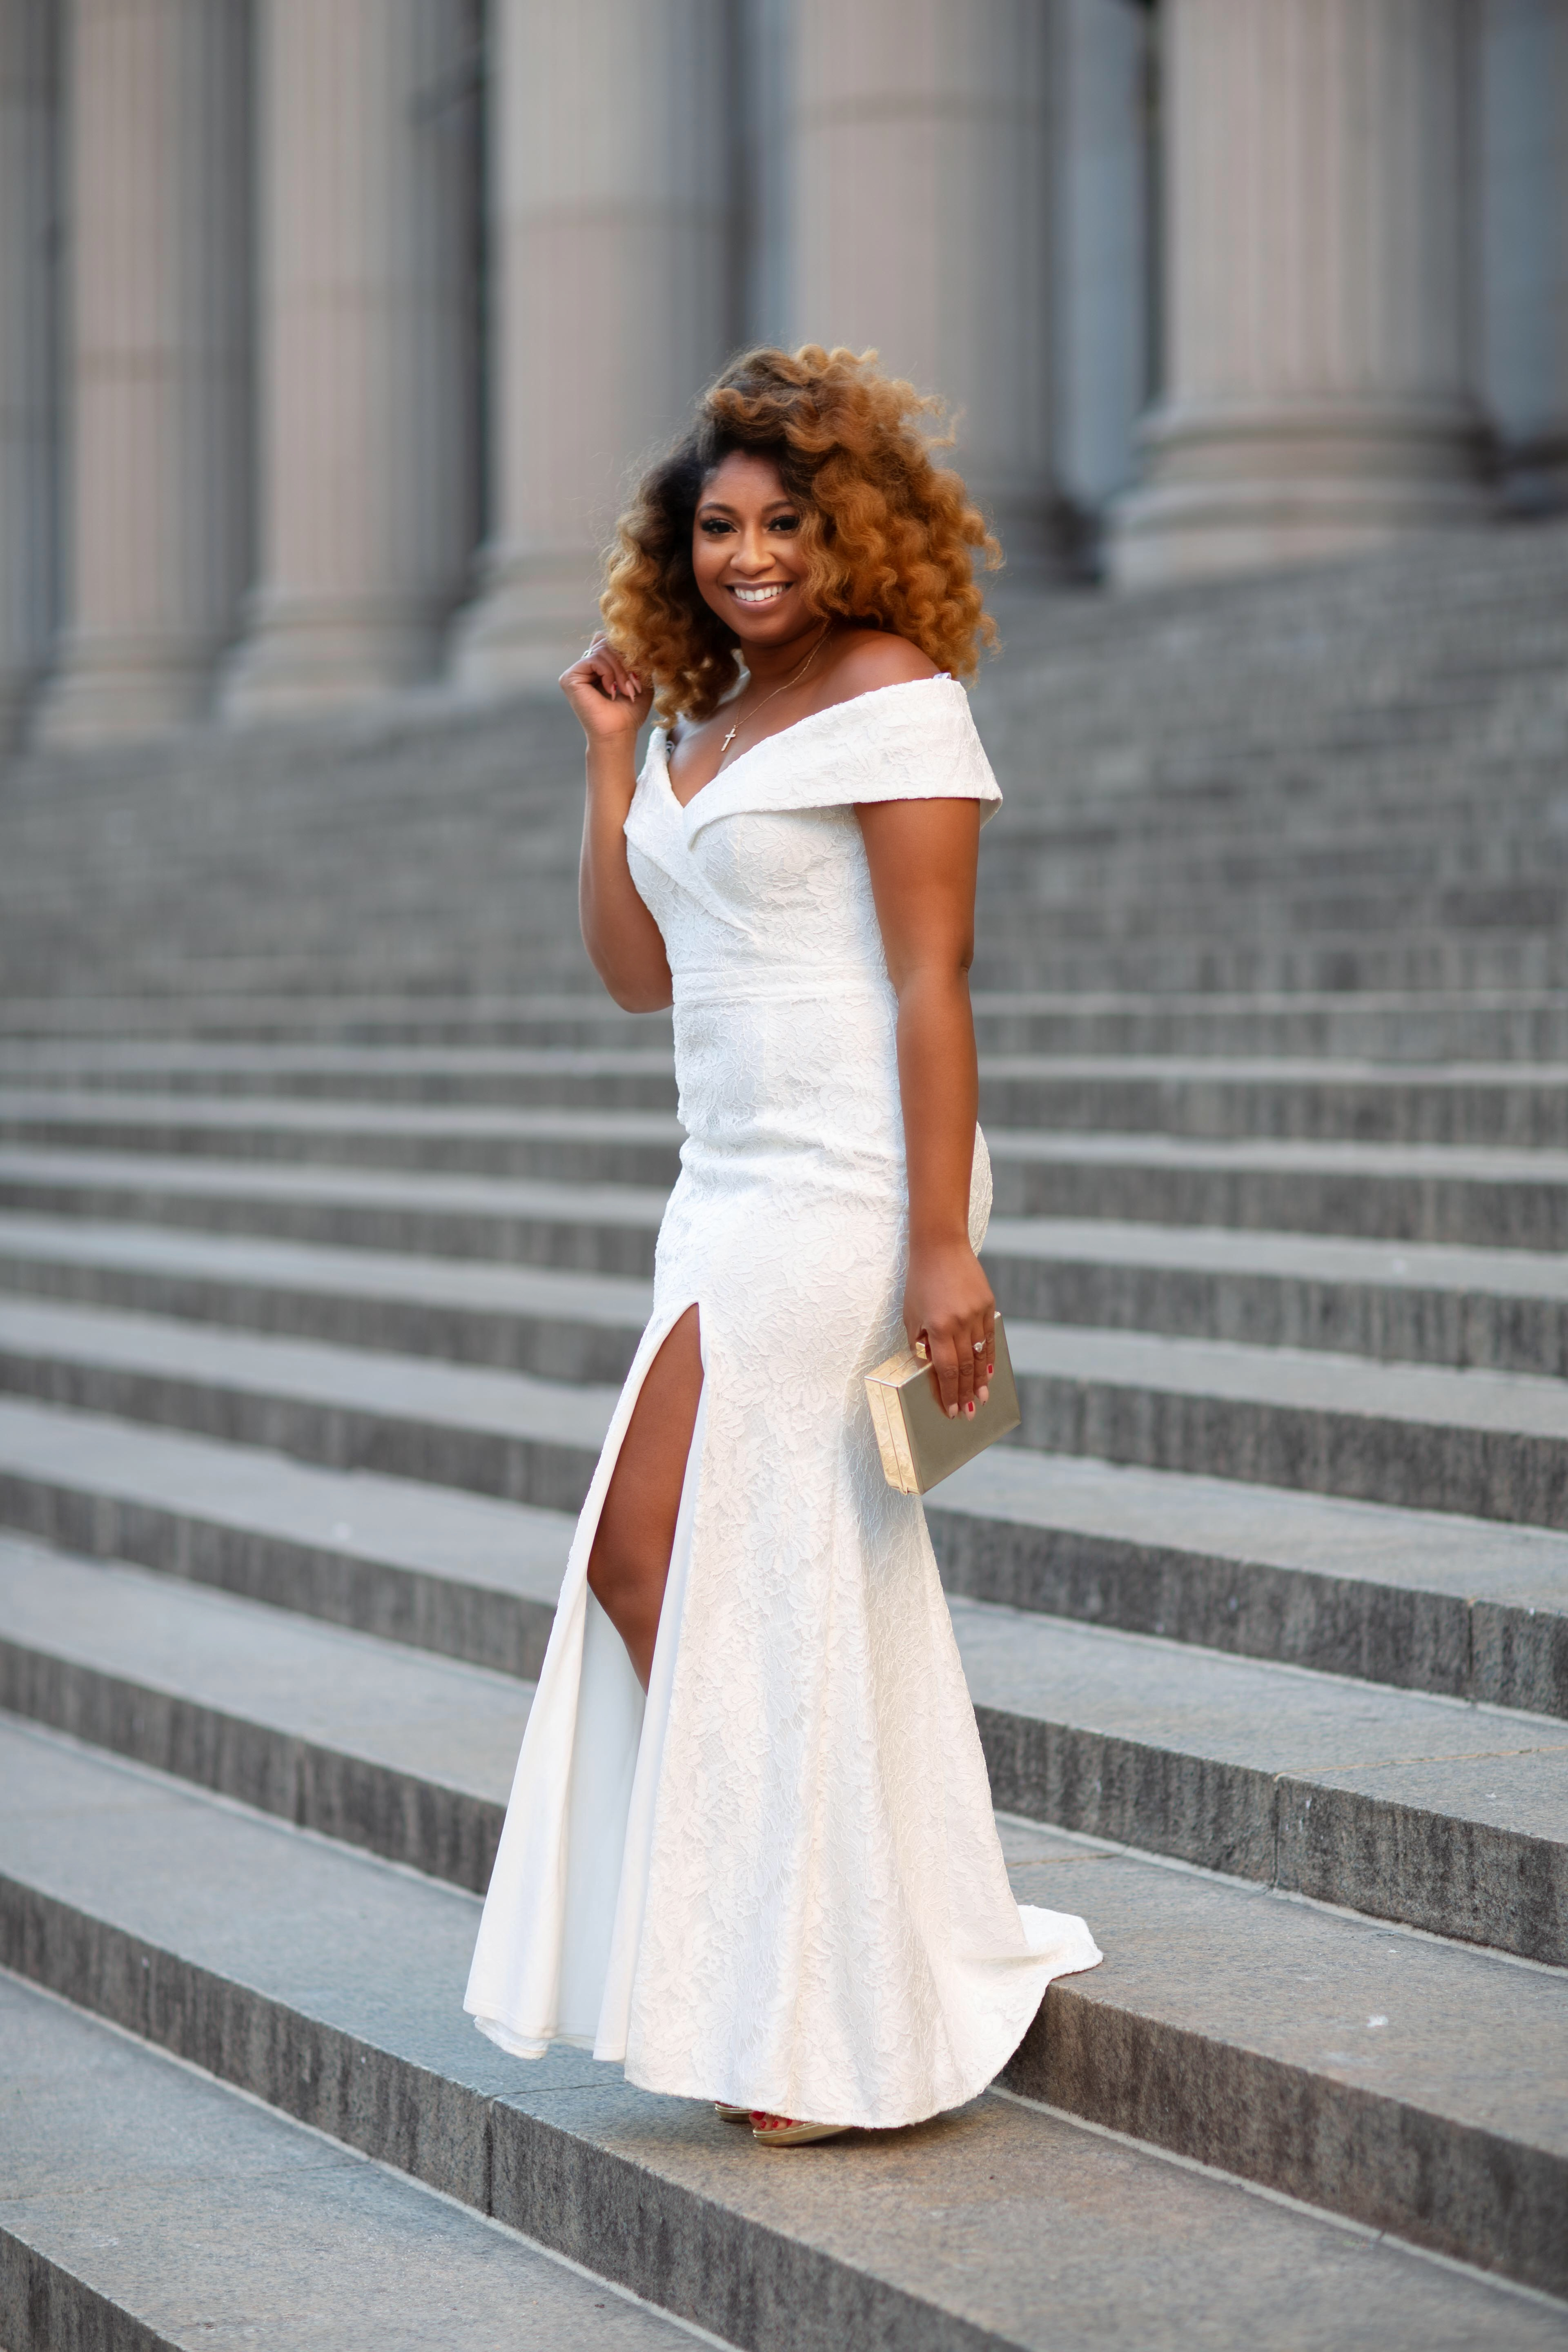 African American woman standing on marble stairs in a long white off-the-shoulder dress and gold accessories